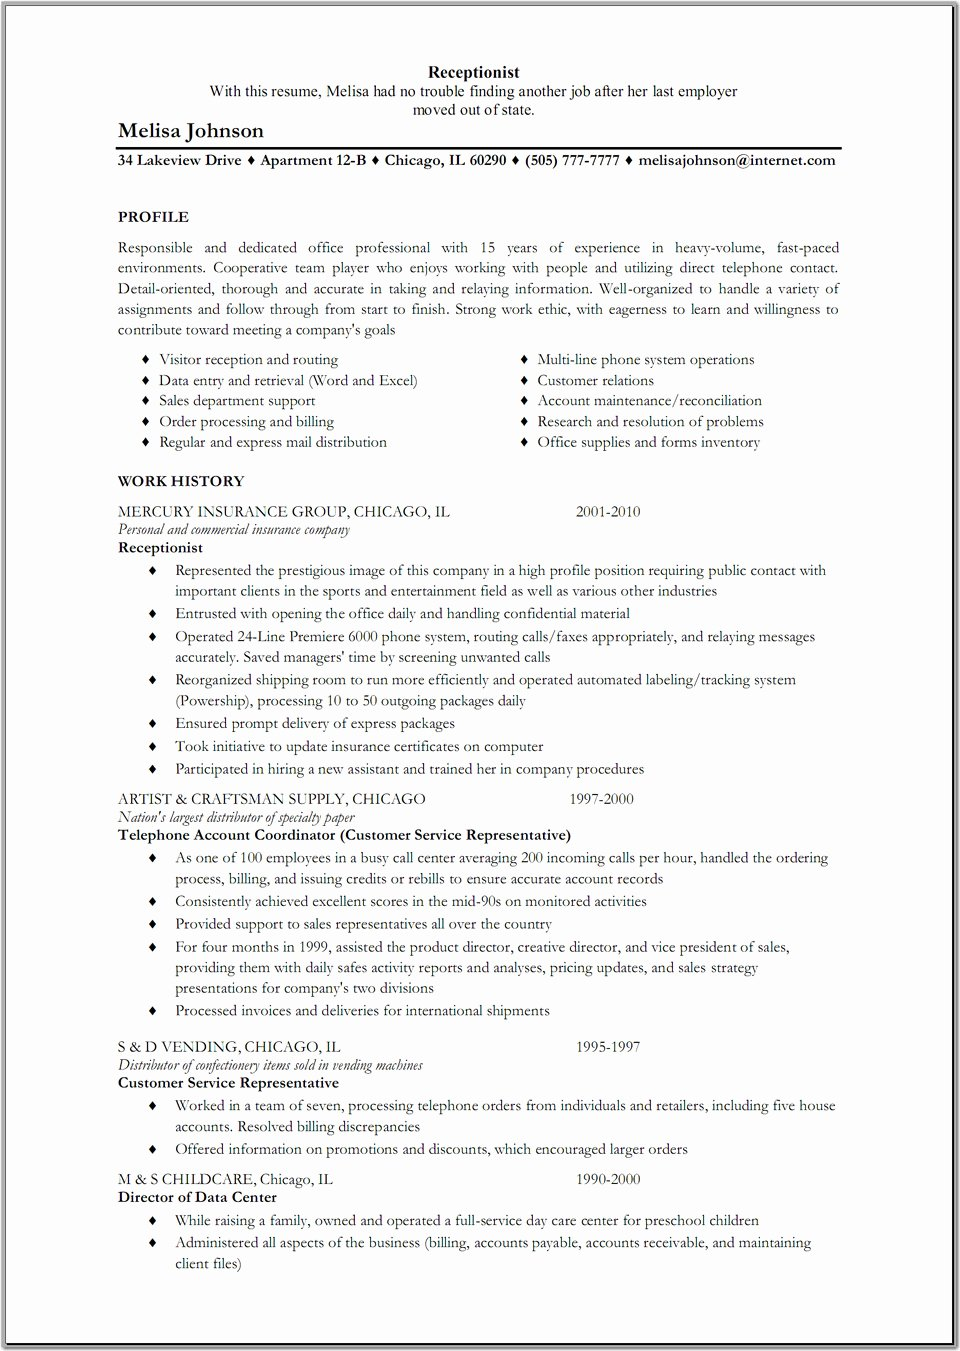 Free Sample Resume for Receptionist – Perfect Resume format